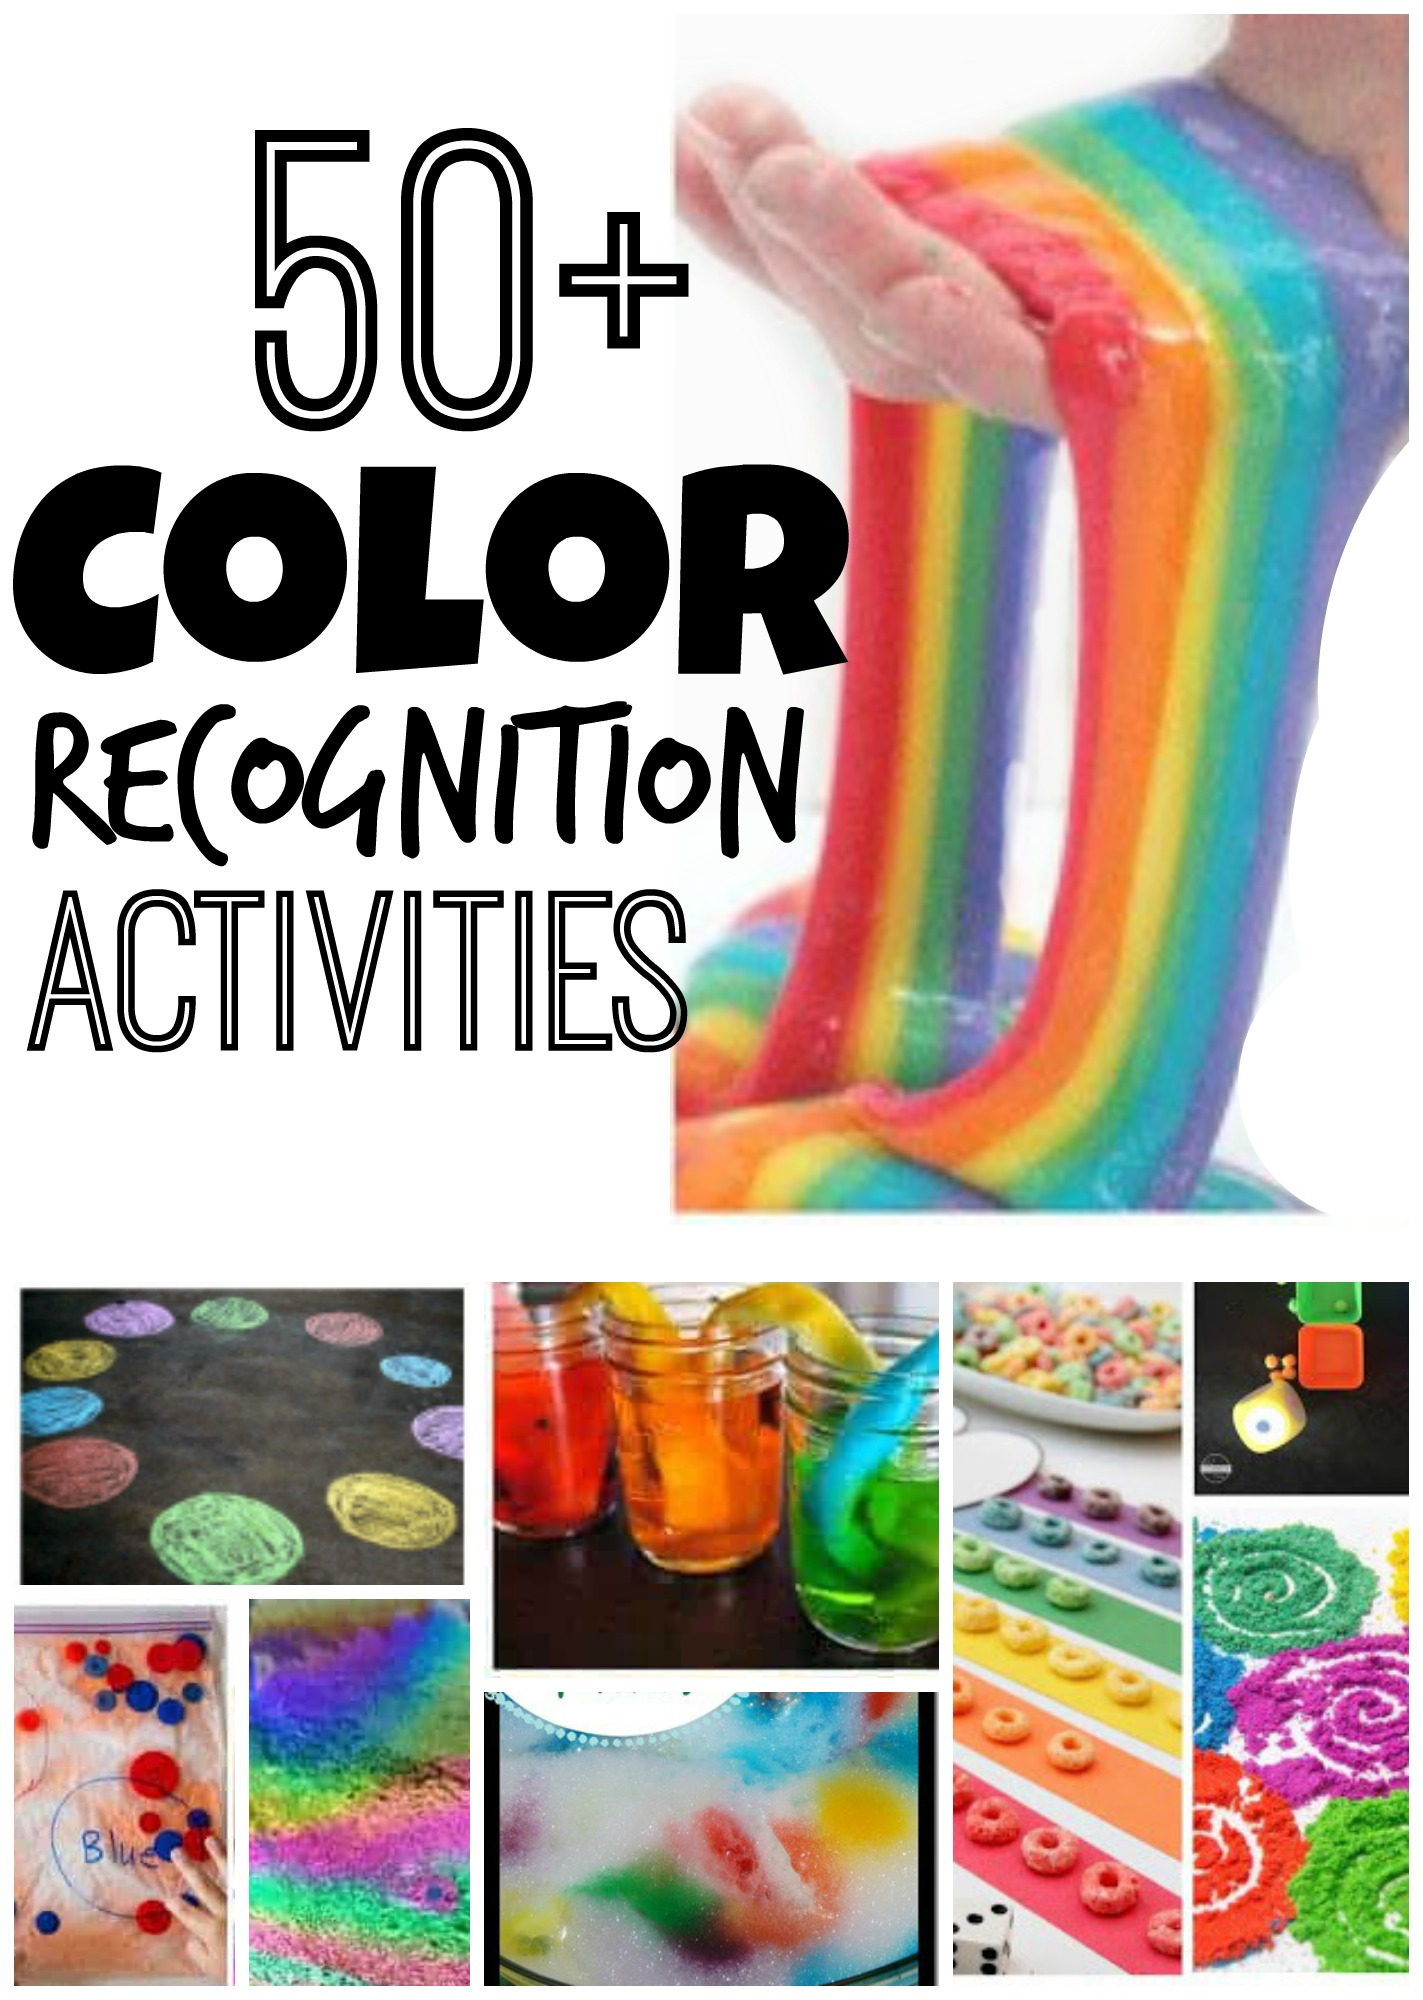 50 Color Recognition Activities For Toddlers And Preschoolers